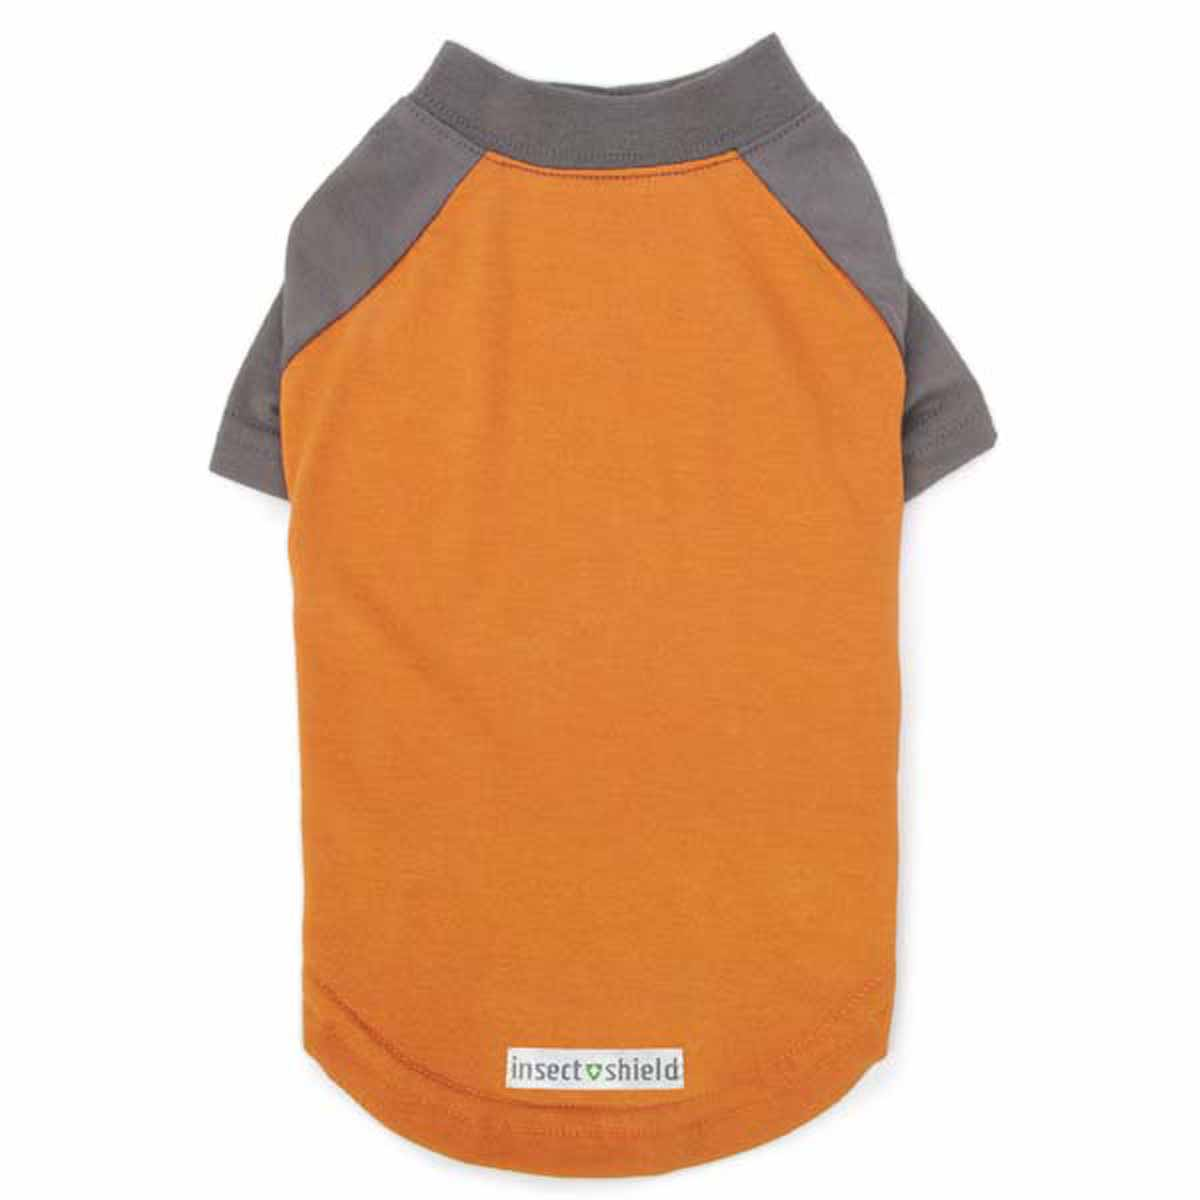 Insect Shield Premium Dog Shirt - Carrot